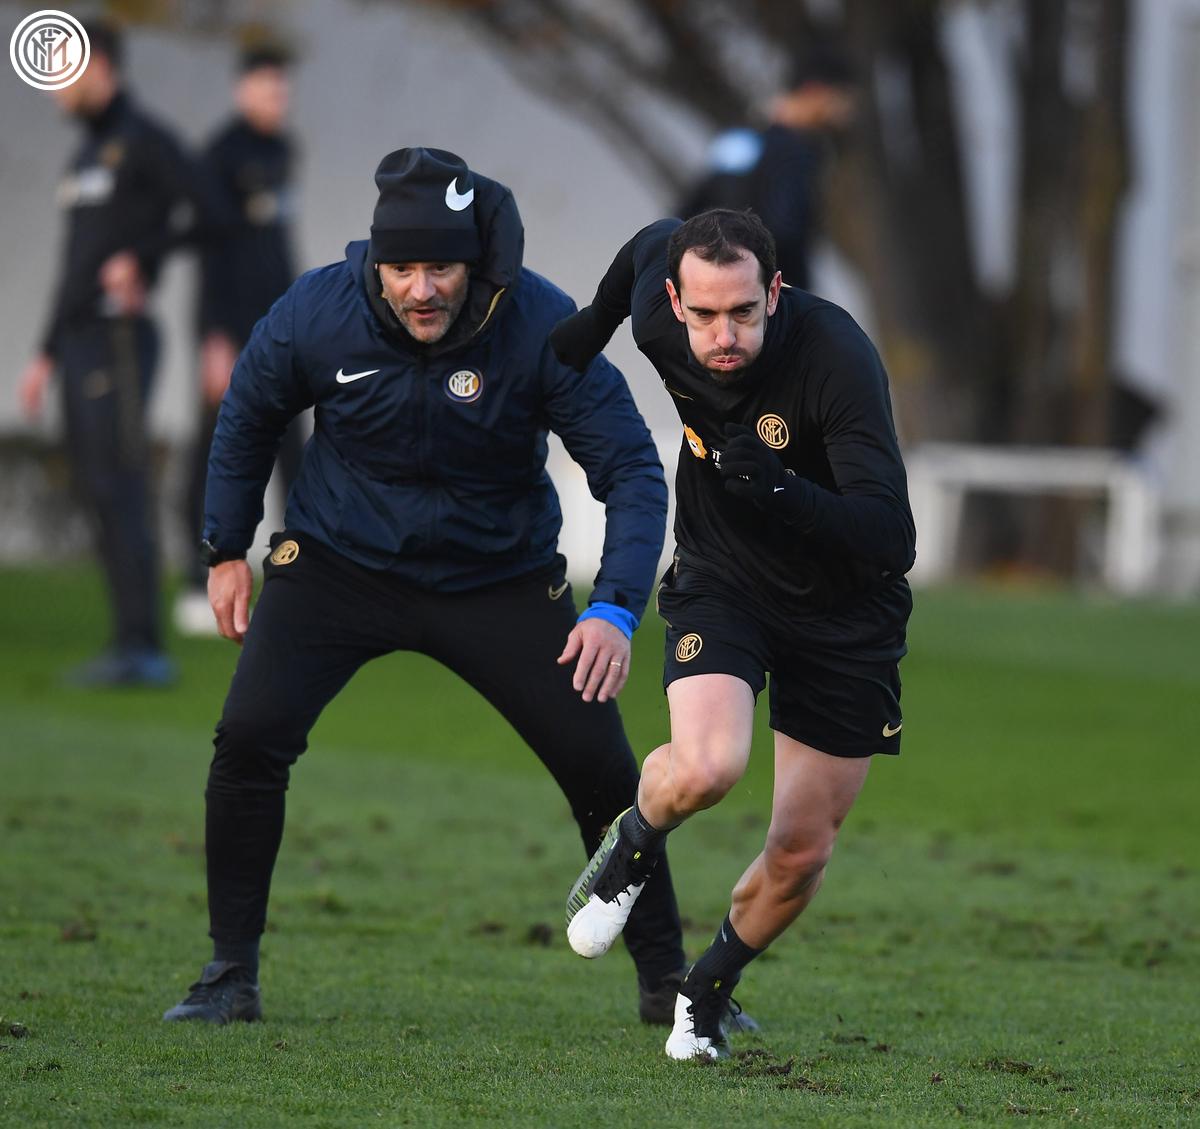 |  #INTERROMA   An afternoon session for the boys today     https://bit.ly/35Zv6OM